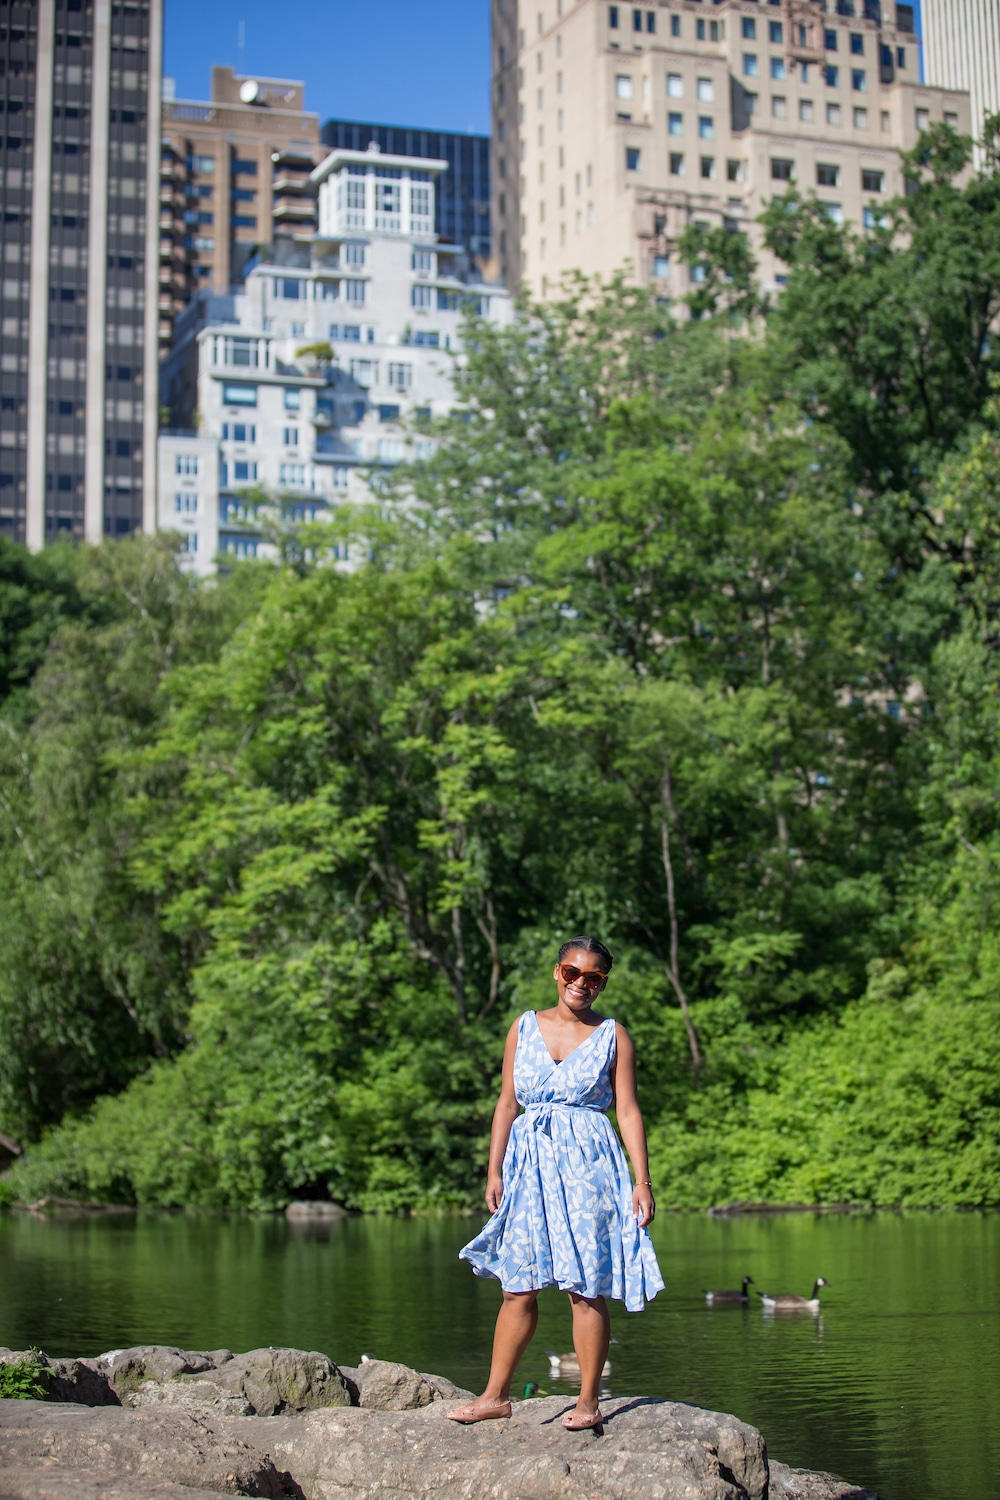 central-park-new-york-photo Mon superbe shooting photo à New York avec Johnny !